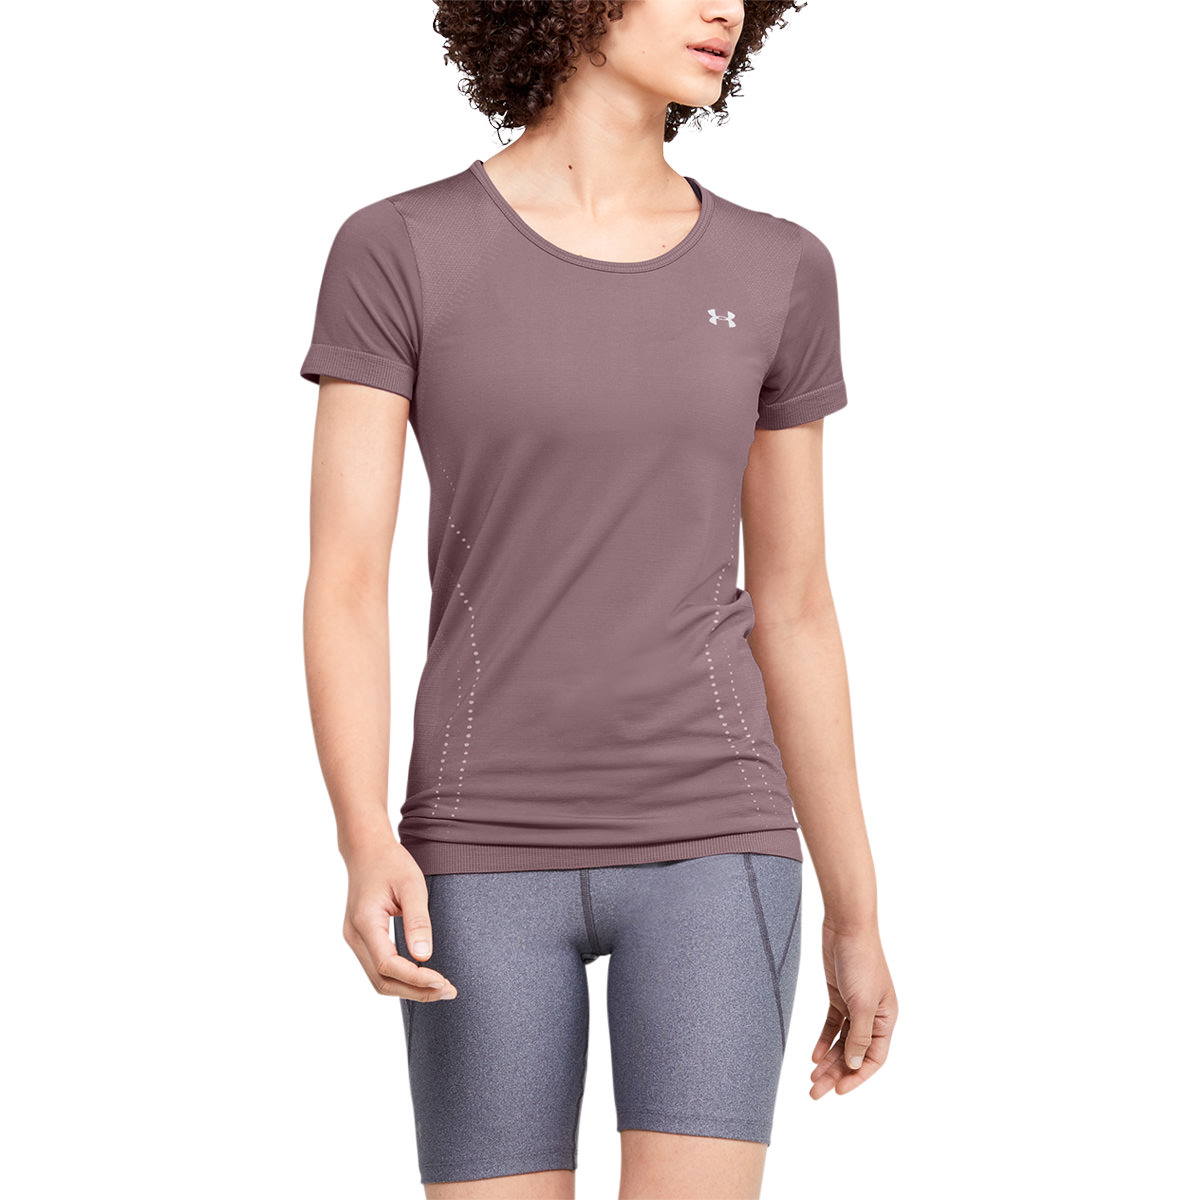 Under Armour Seamless Trænings T-shirt Dame